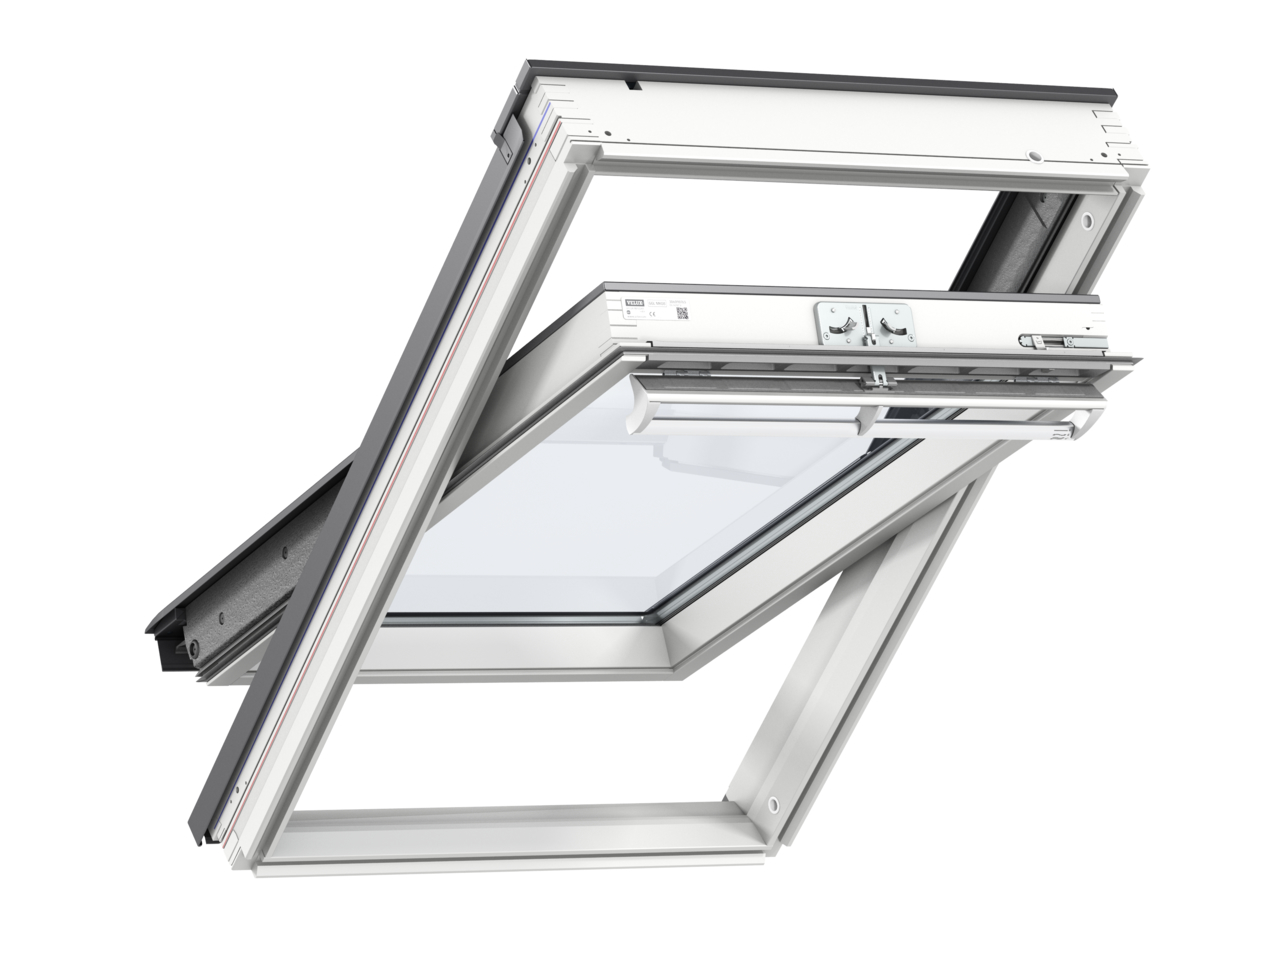 Velux GGL CK06 550 x 1180mm Centre Pivot 62Pane Roof Window - White Painted